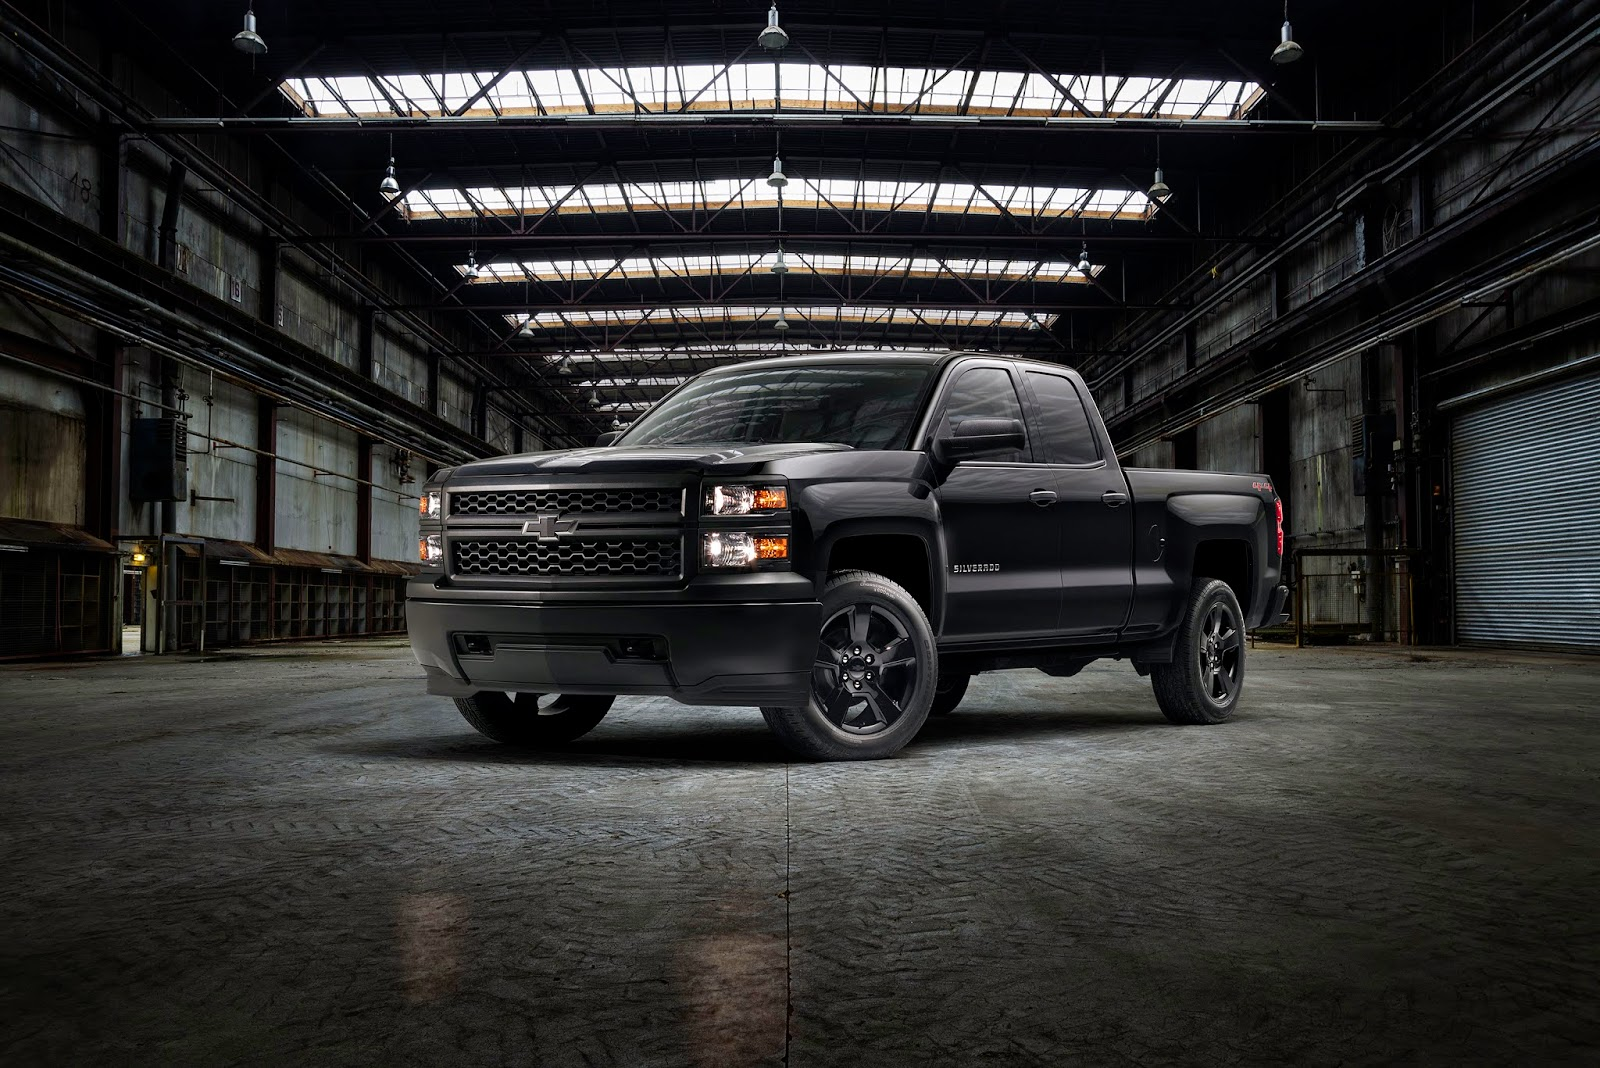 New 2015 Chevy Silverado Black Out Package For Work Trucks